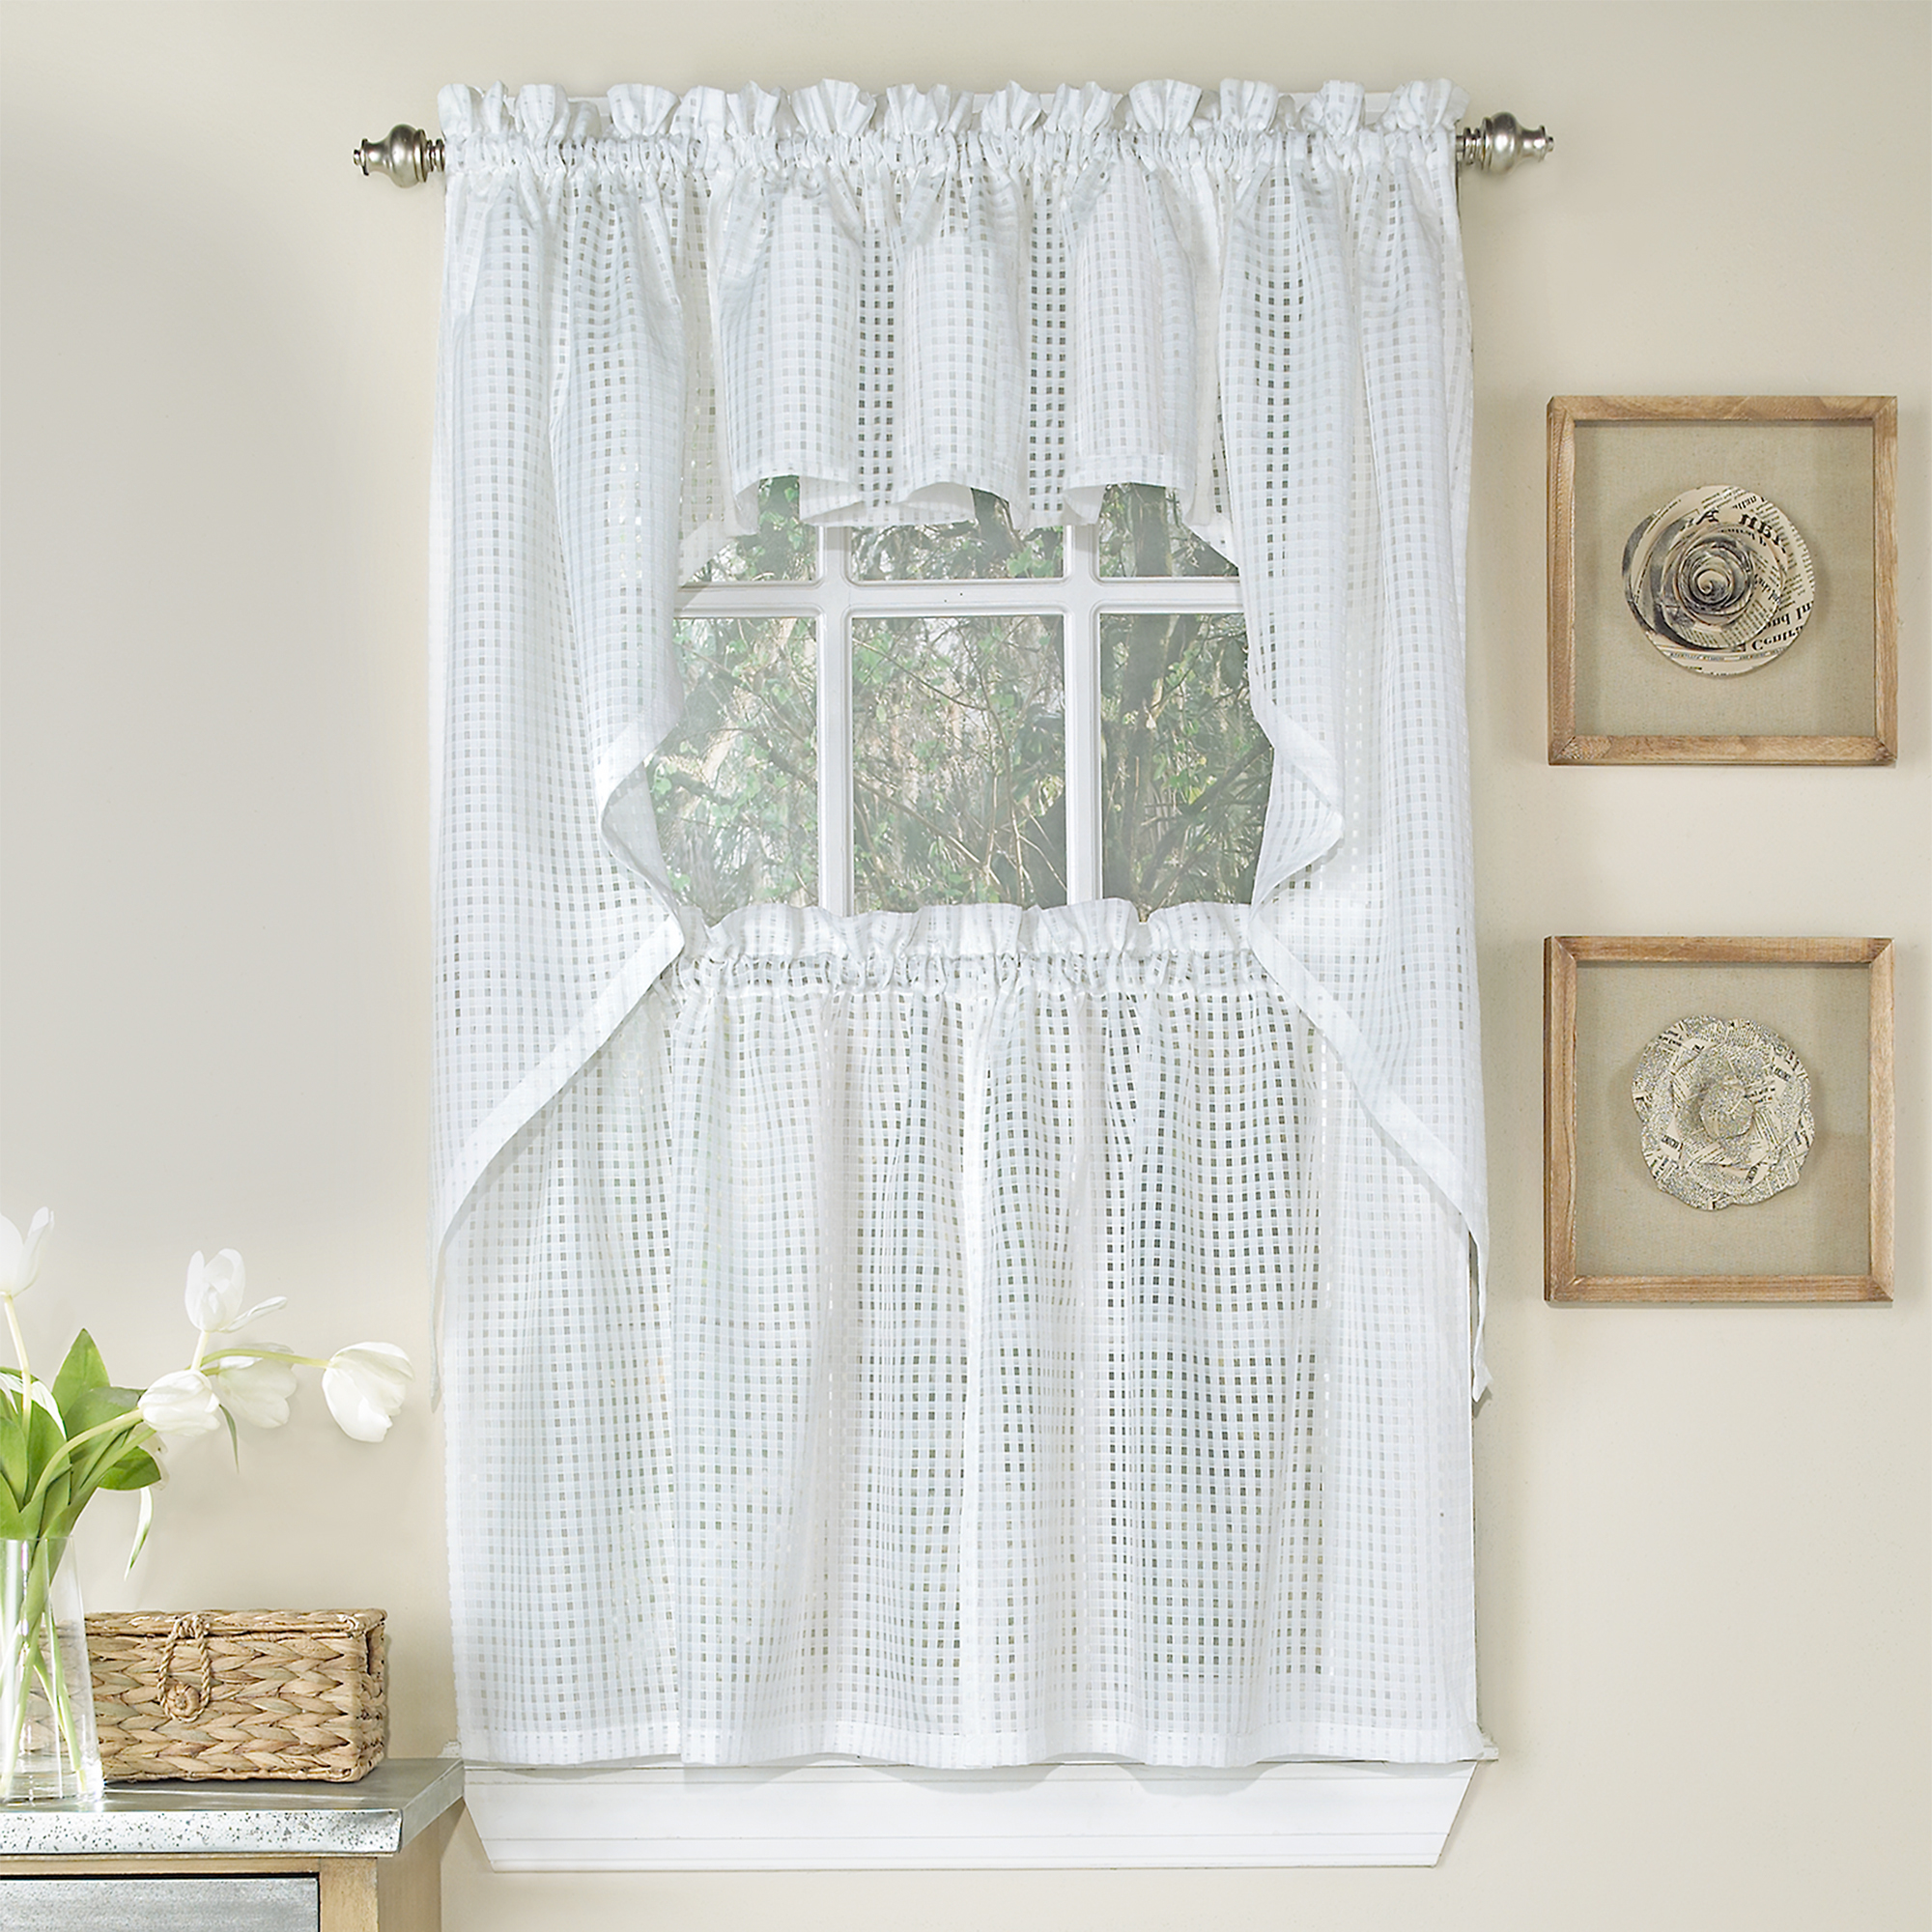 Semi Sheer Rod Pocket Kitchen Curtain Valance And Tiers Sets In Current Details About Micro Check 2 Tone White Semi Sheer Window Curtain Tiers, Valance, Or Swag (View 13 of 20)